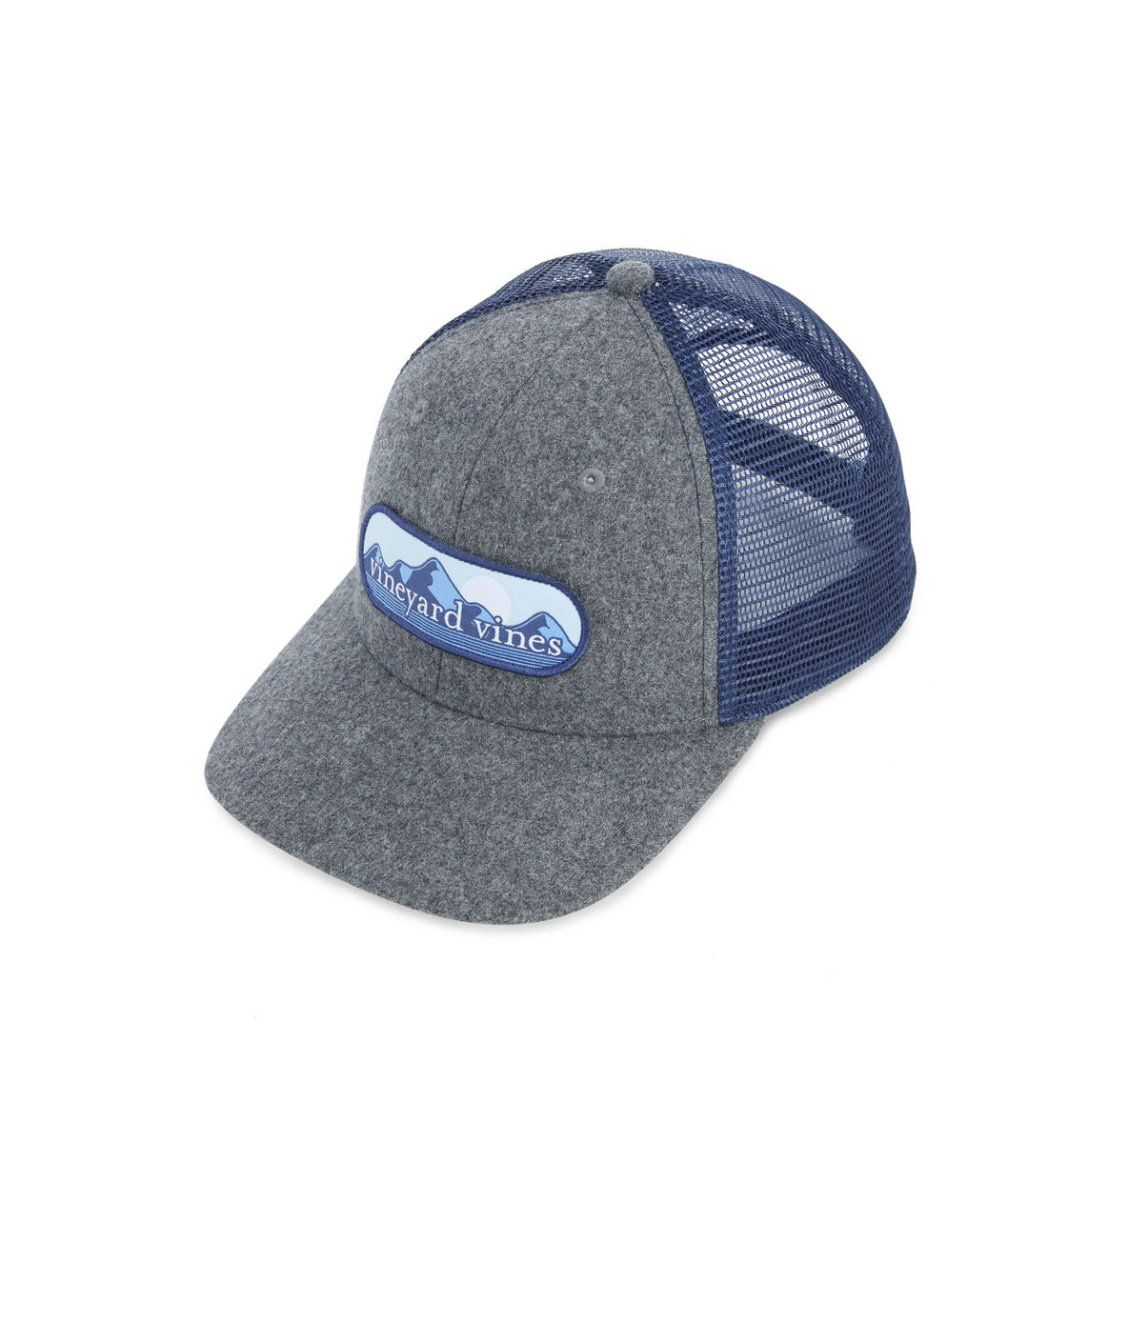 56850ea6 vineyard vines Mountain Patch Wool Trucker Hat | new arrivals in ...